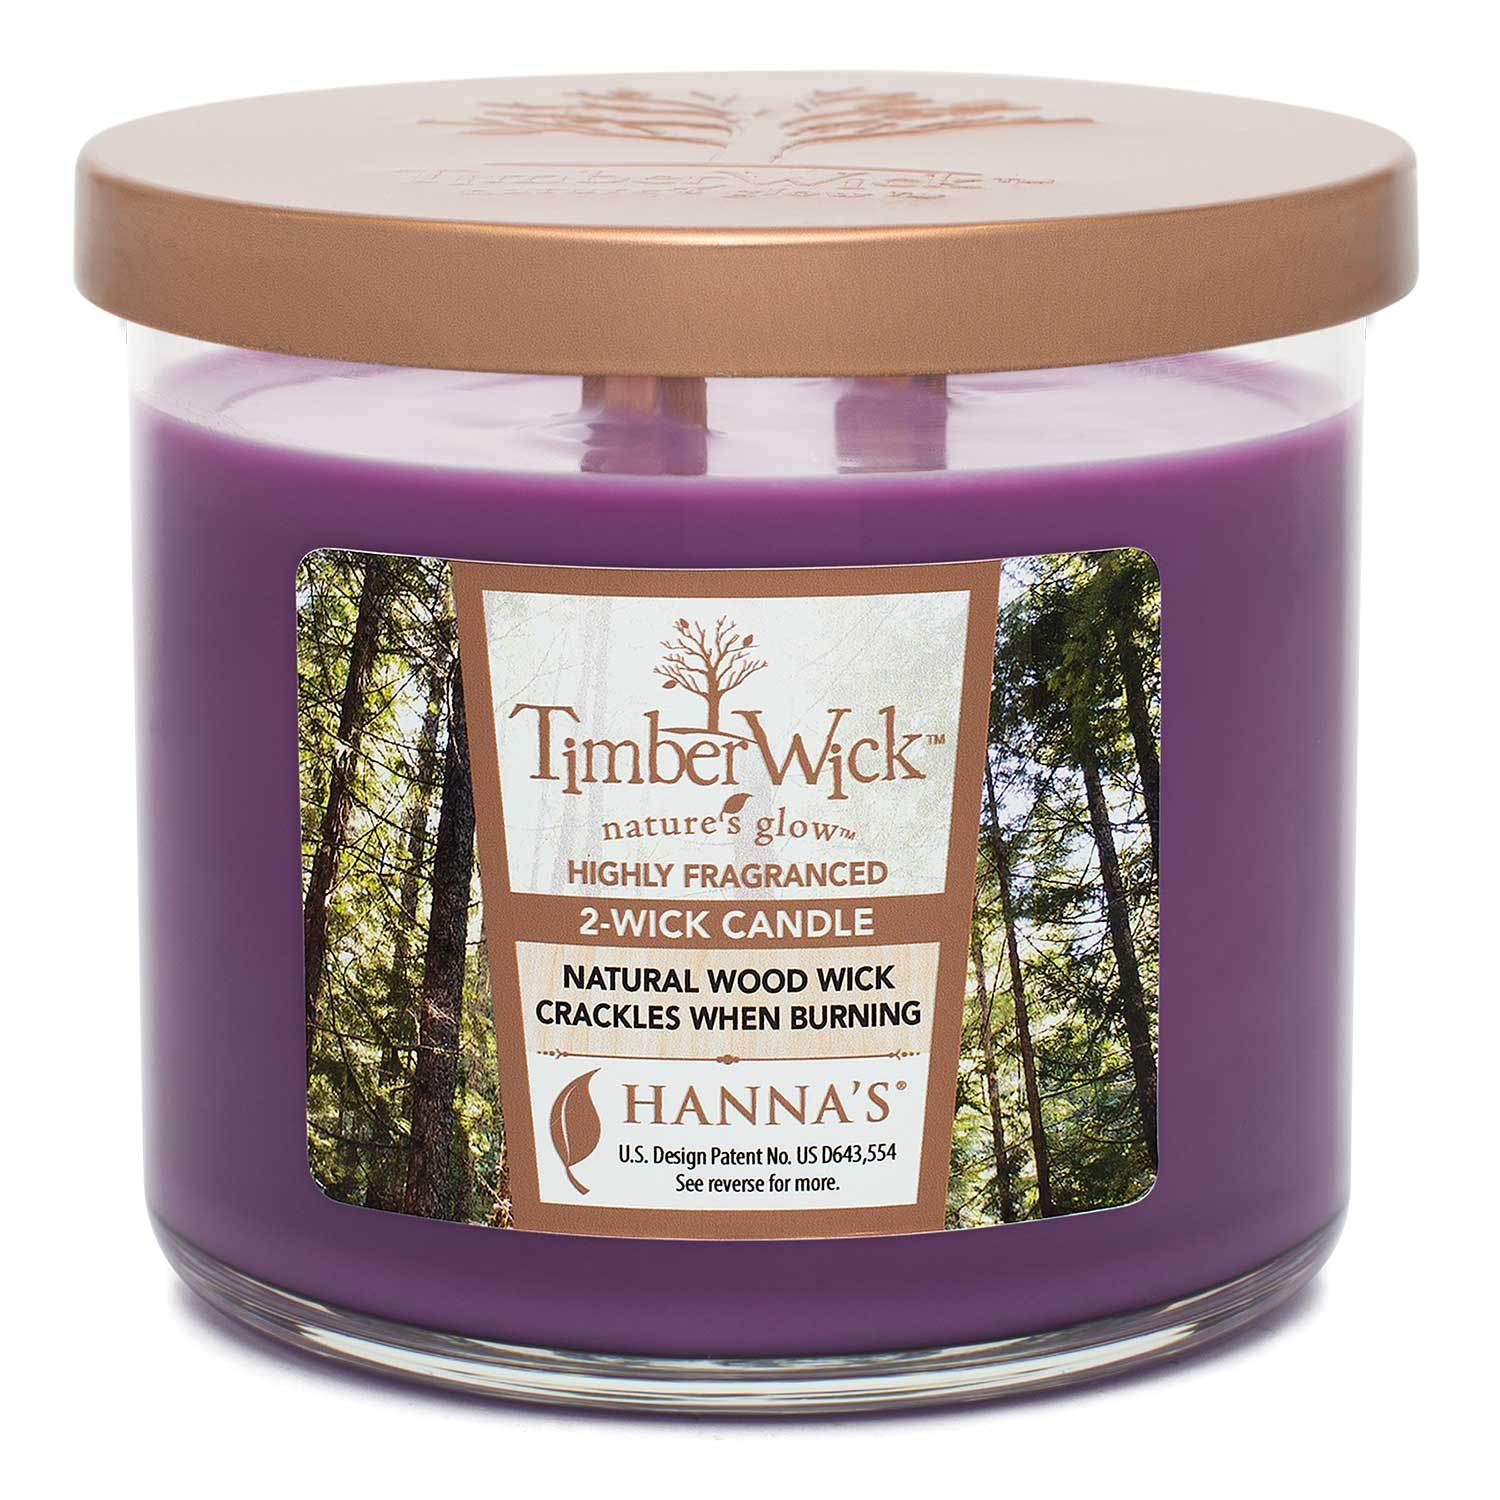 Timberwick Lavender Sachet Scented 2 wick Candle